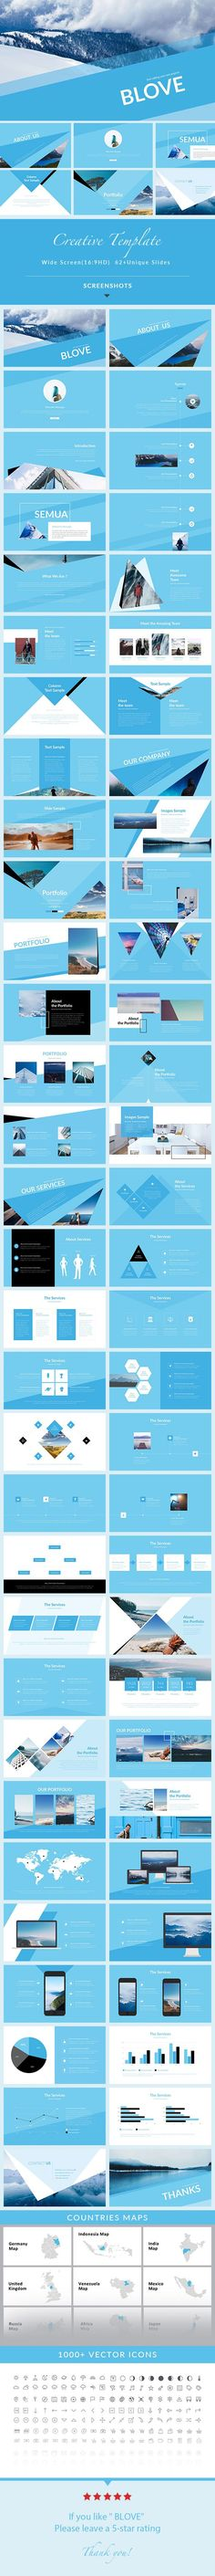 Blove - PowerPoint Presentation Template - Creative PowerPoint Templates